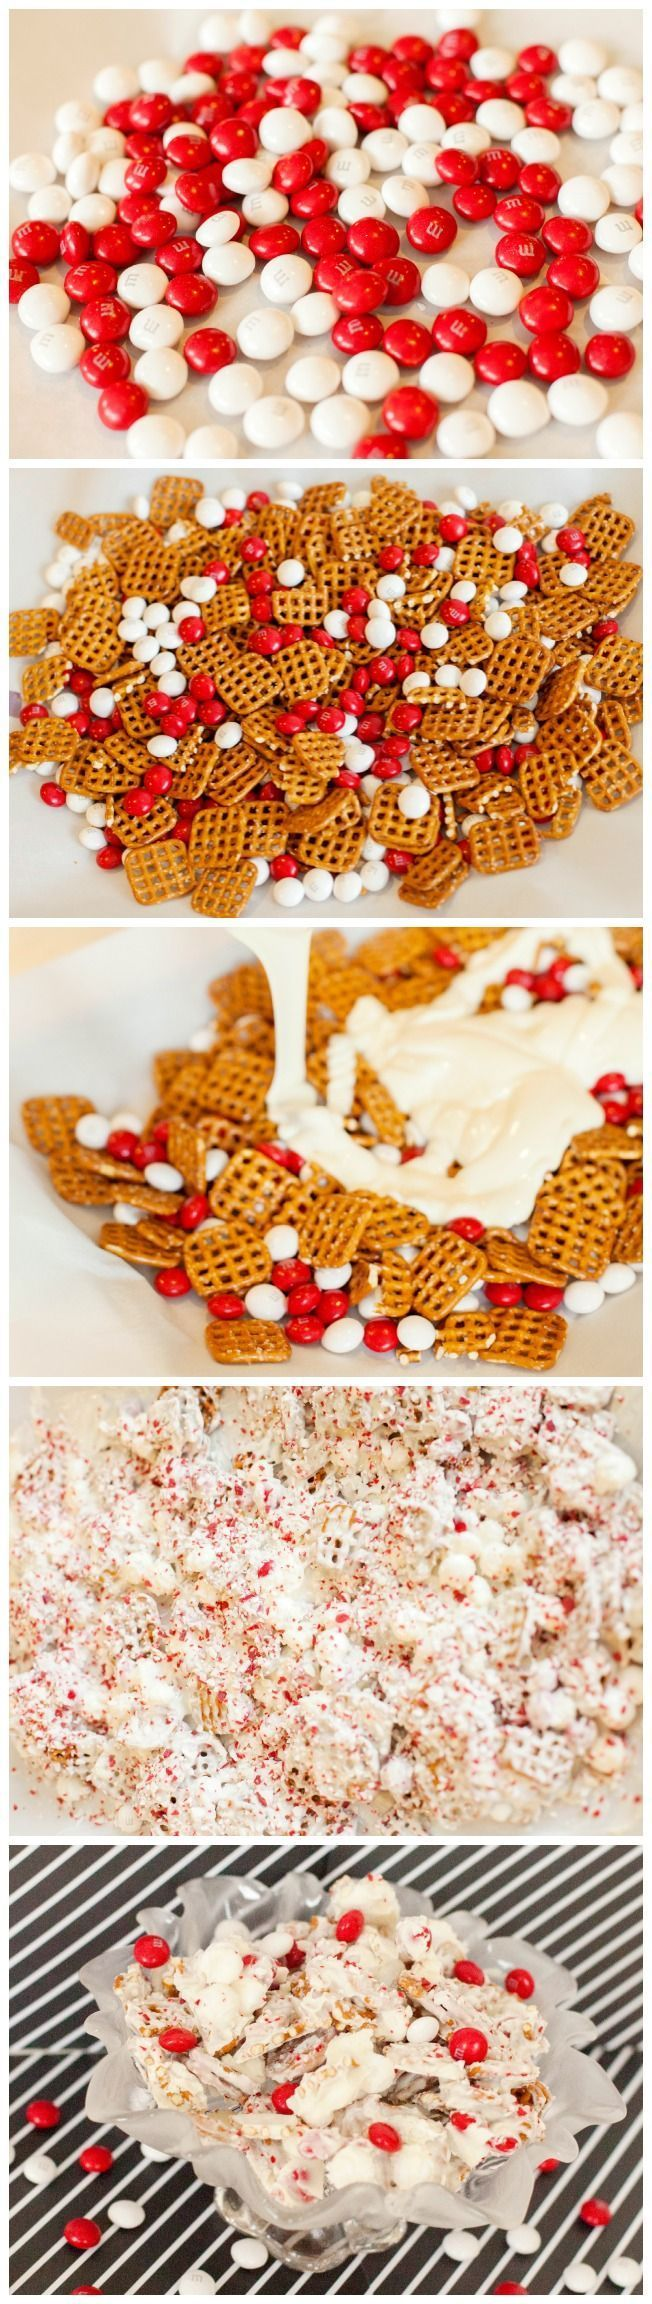 Here's a delicious and easy sweet snack for the Christmas / Holiday season! This Peppermint Bark recipe also makes a great gift for friends, teachers, or neighbors! http://KristenDuke.com